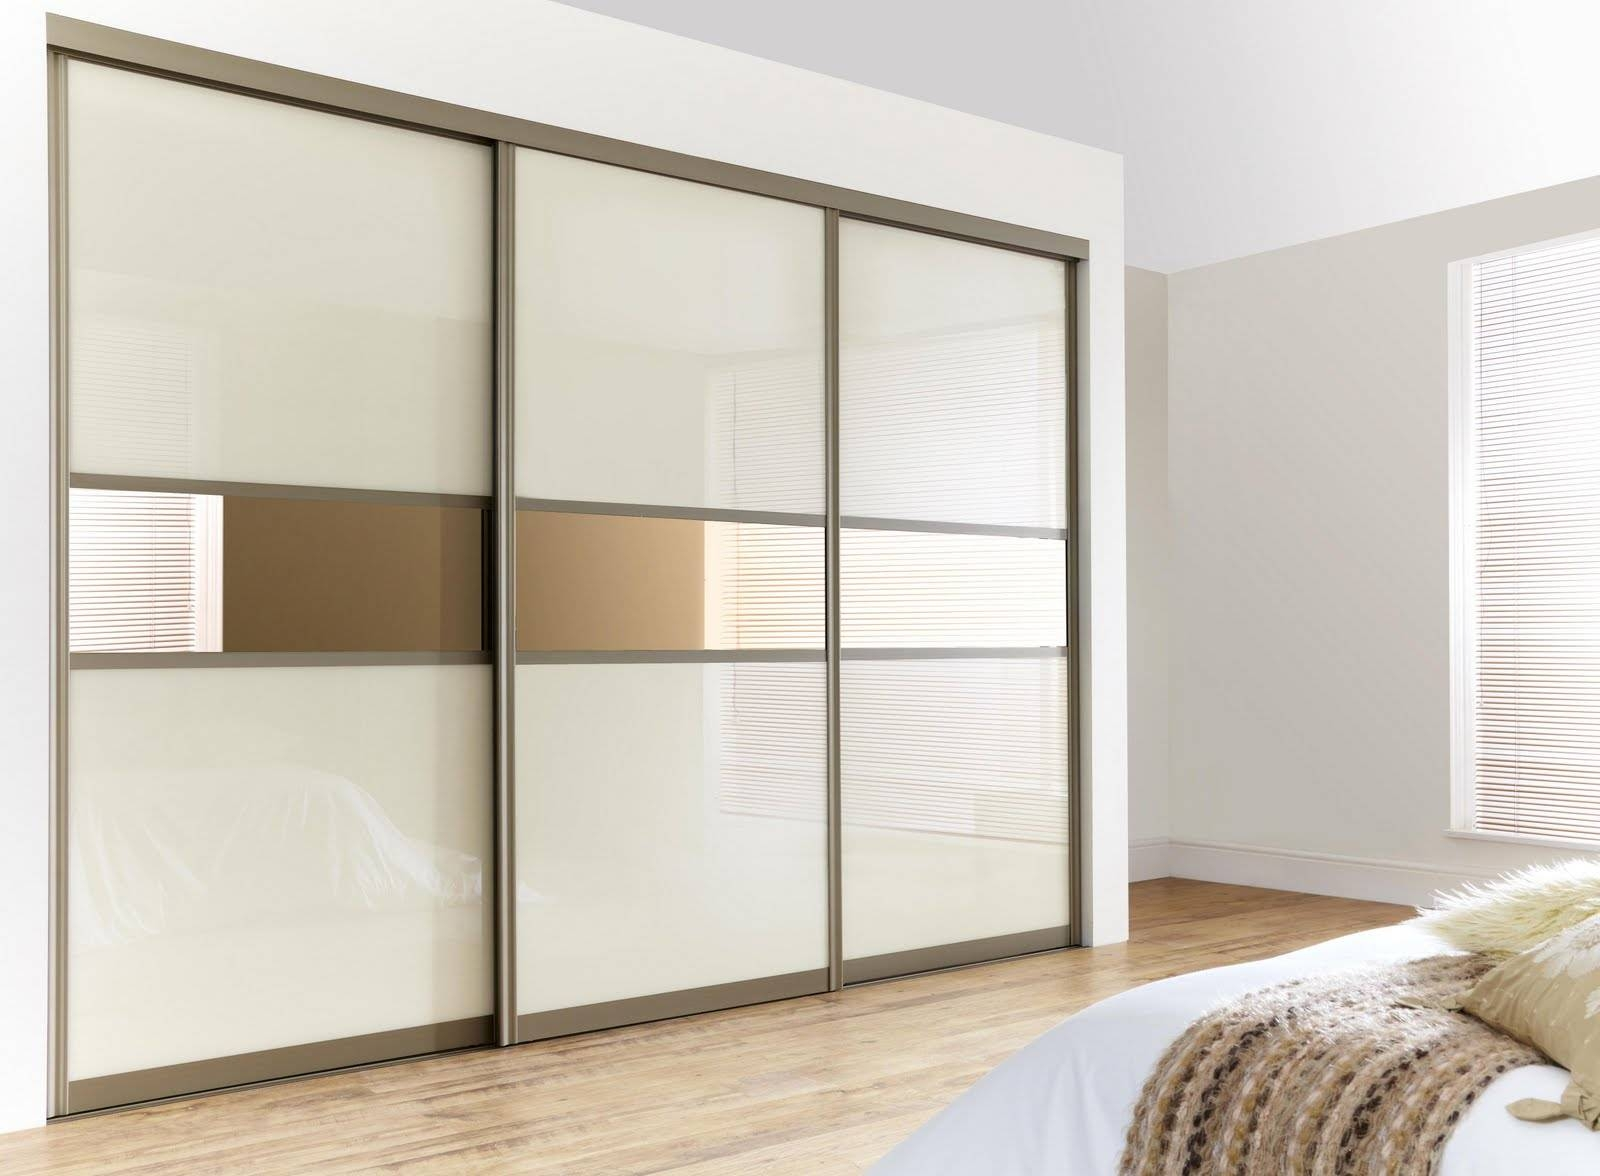 Bedroom. Glass Sliding Wardrobe Door In Black Color With White with regard to Curved Wardrobe Doors (Image 4 of 30)